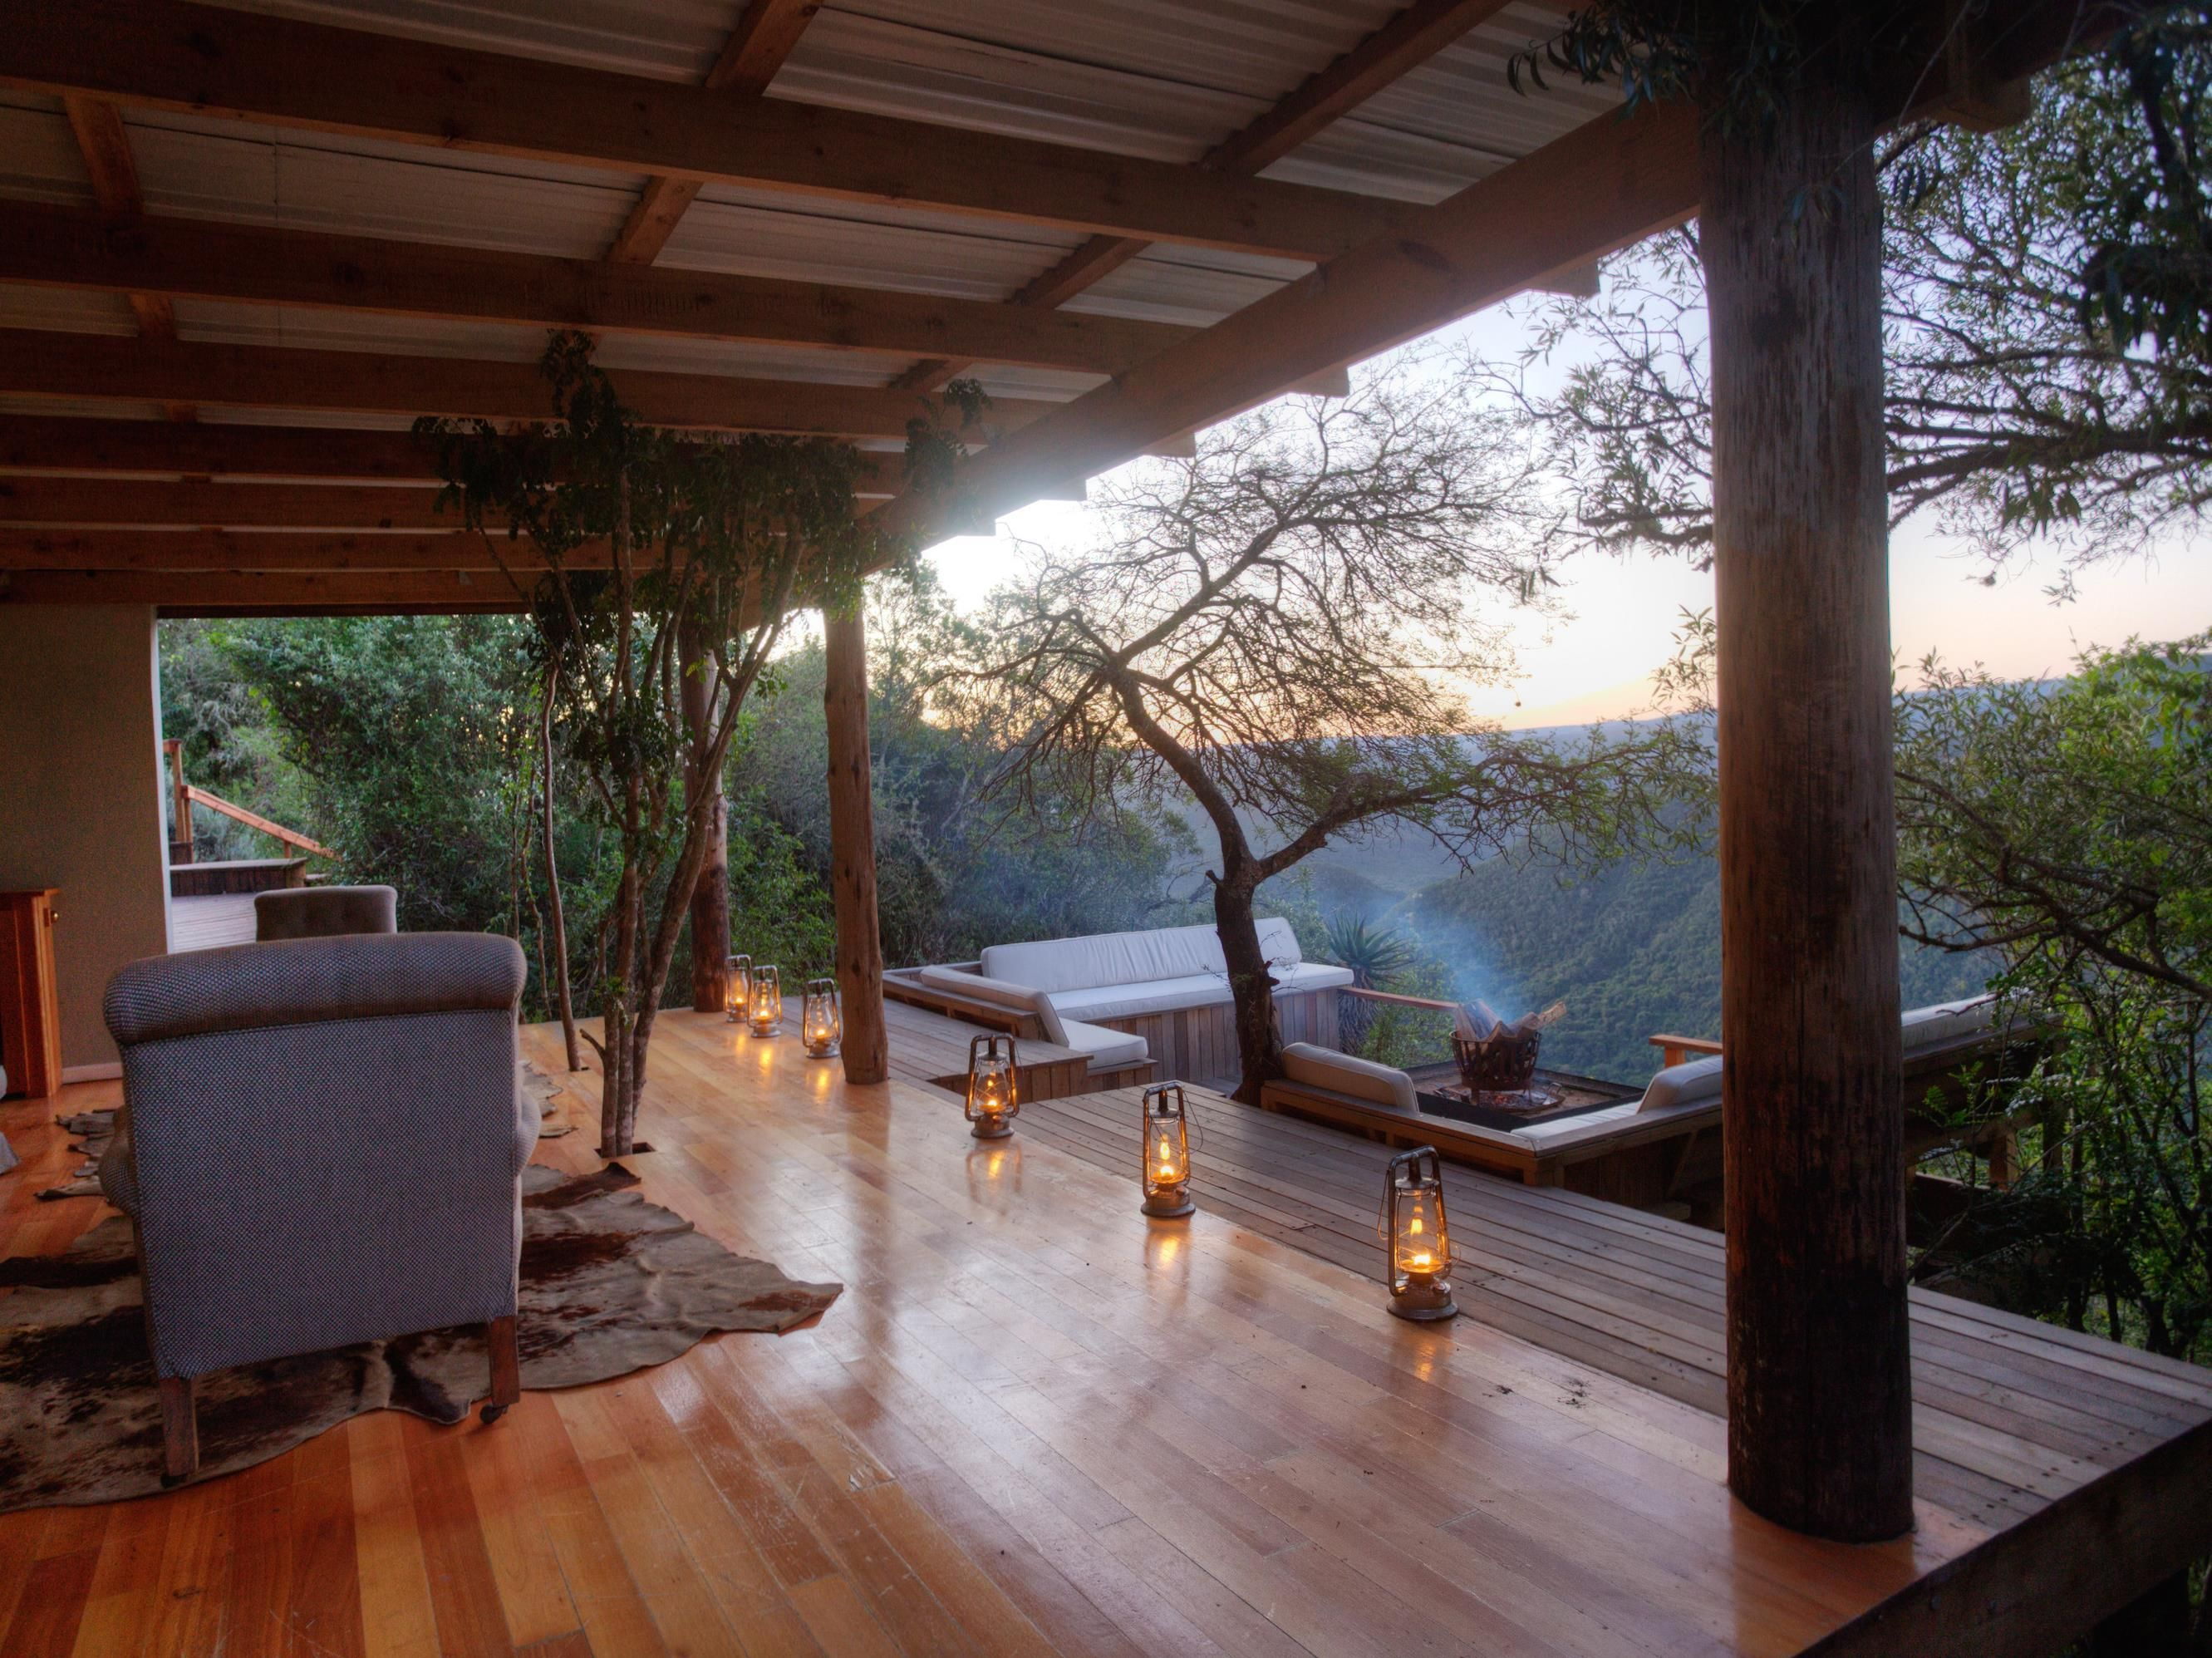 Camp Figtree Hotel Addo, South Africa | Finding Neverland | Pinterest